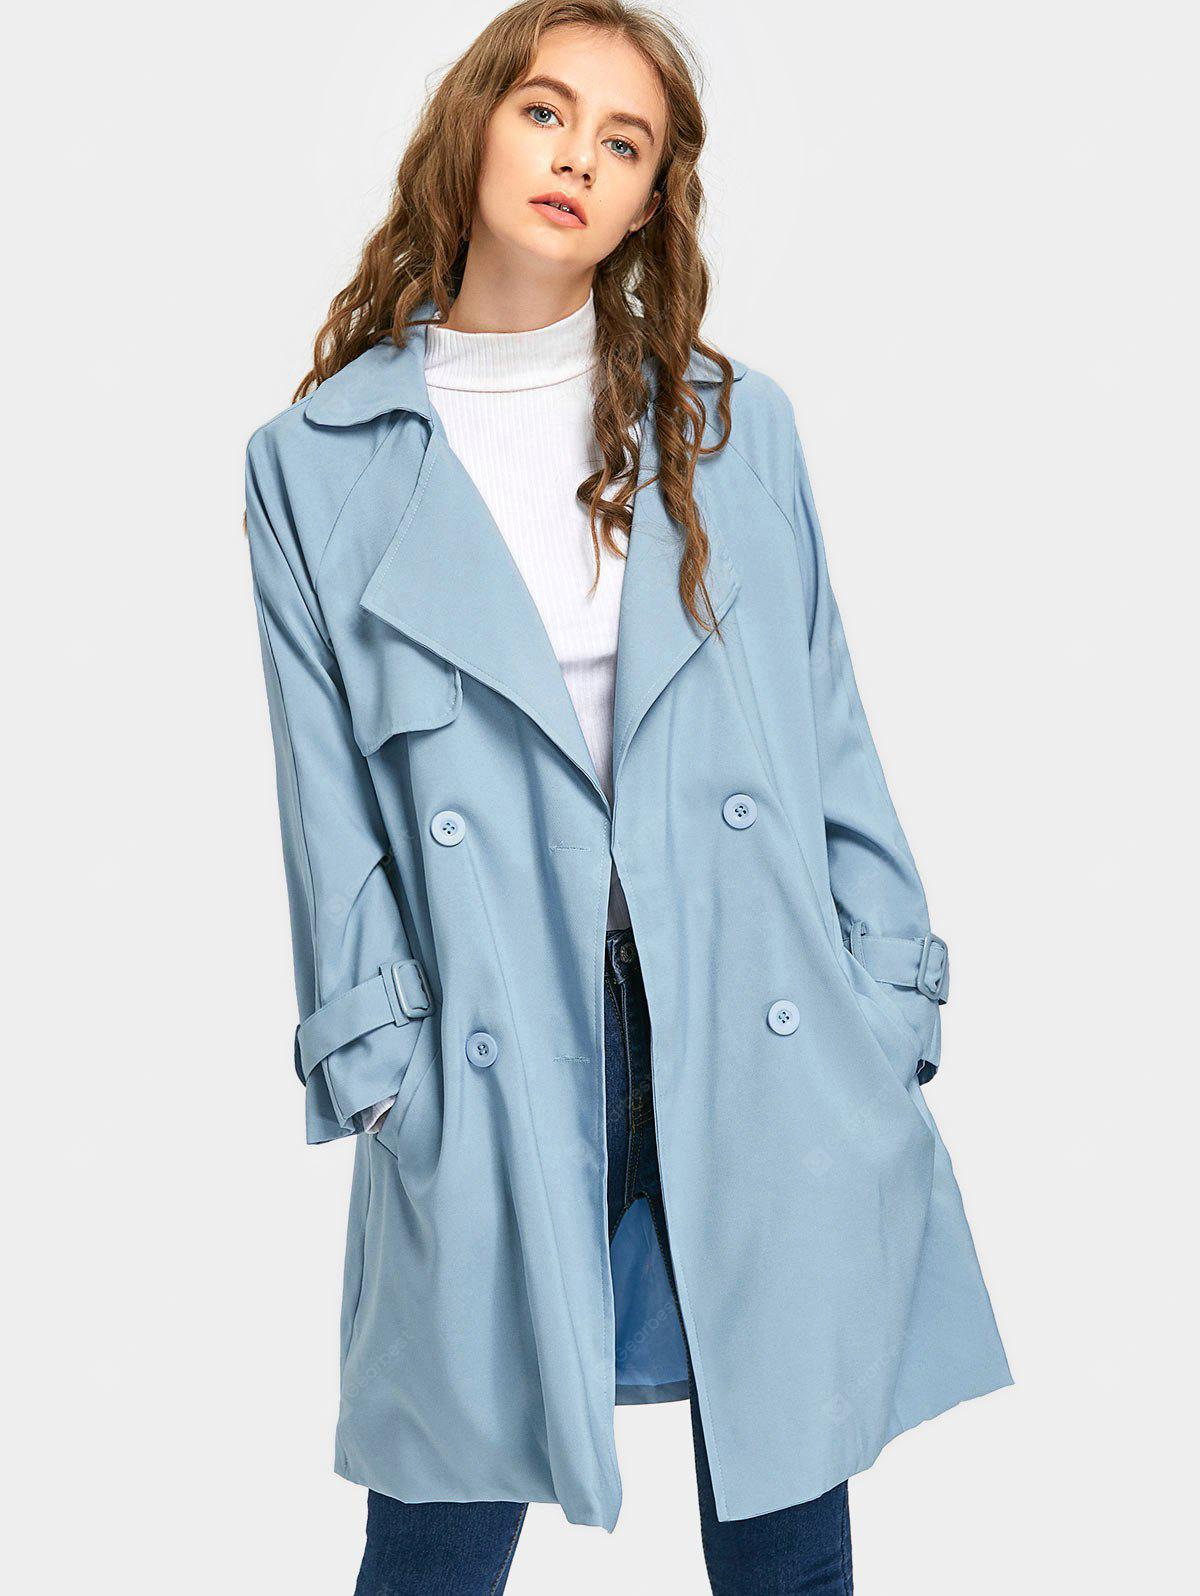 Double Breasted Lapel Coat with Belt